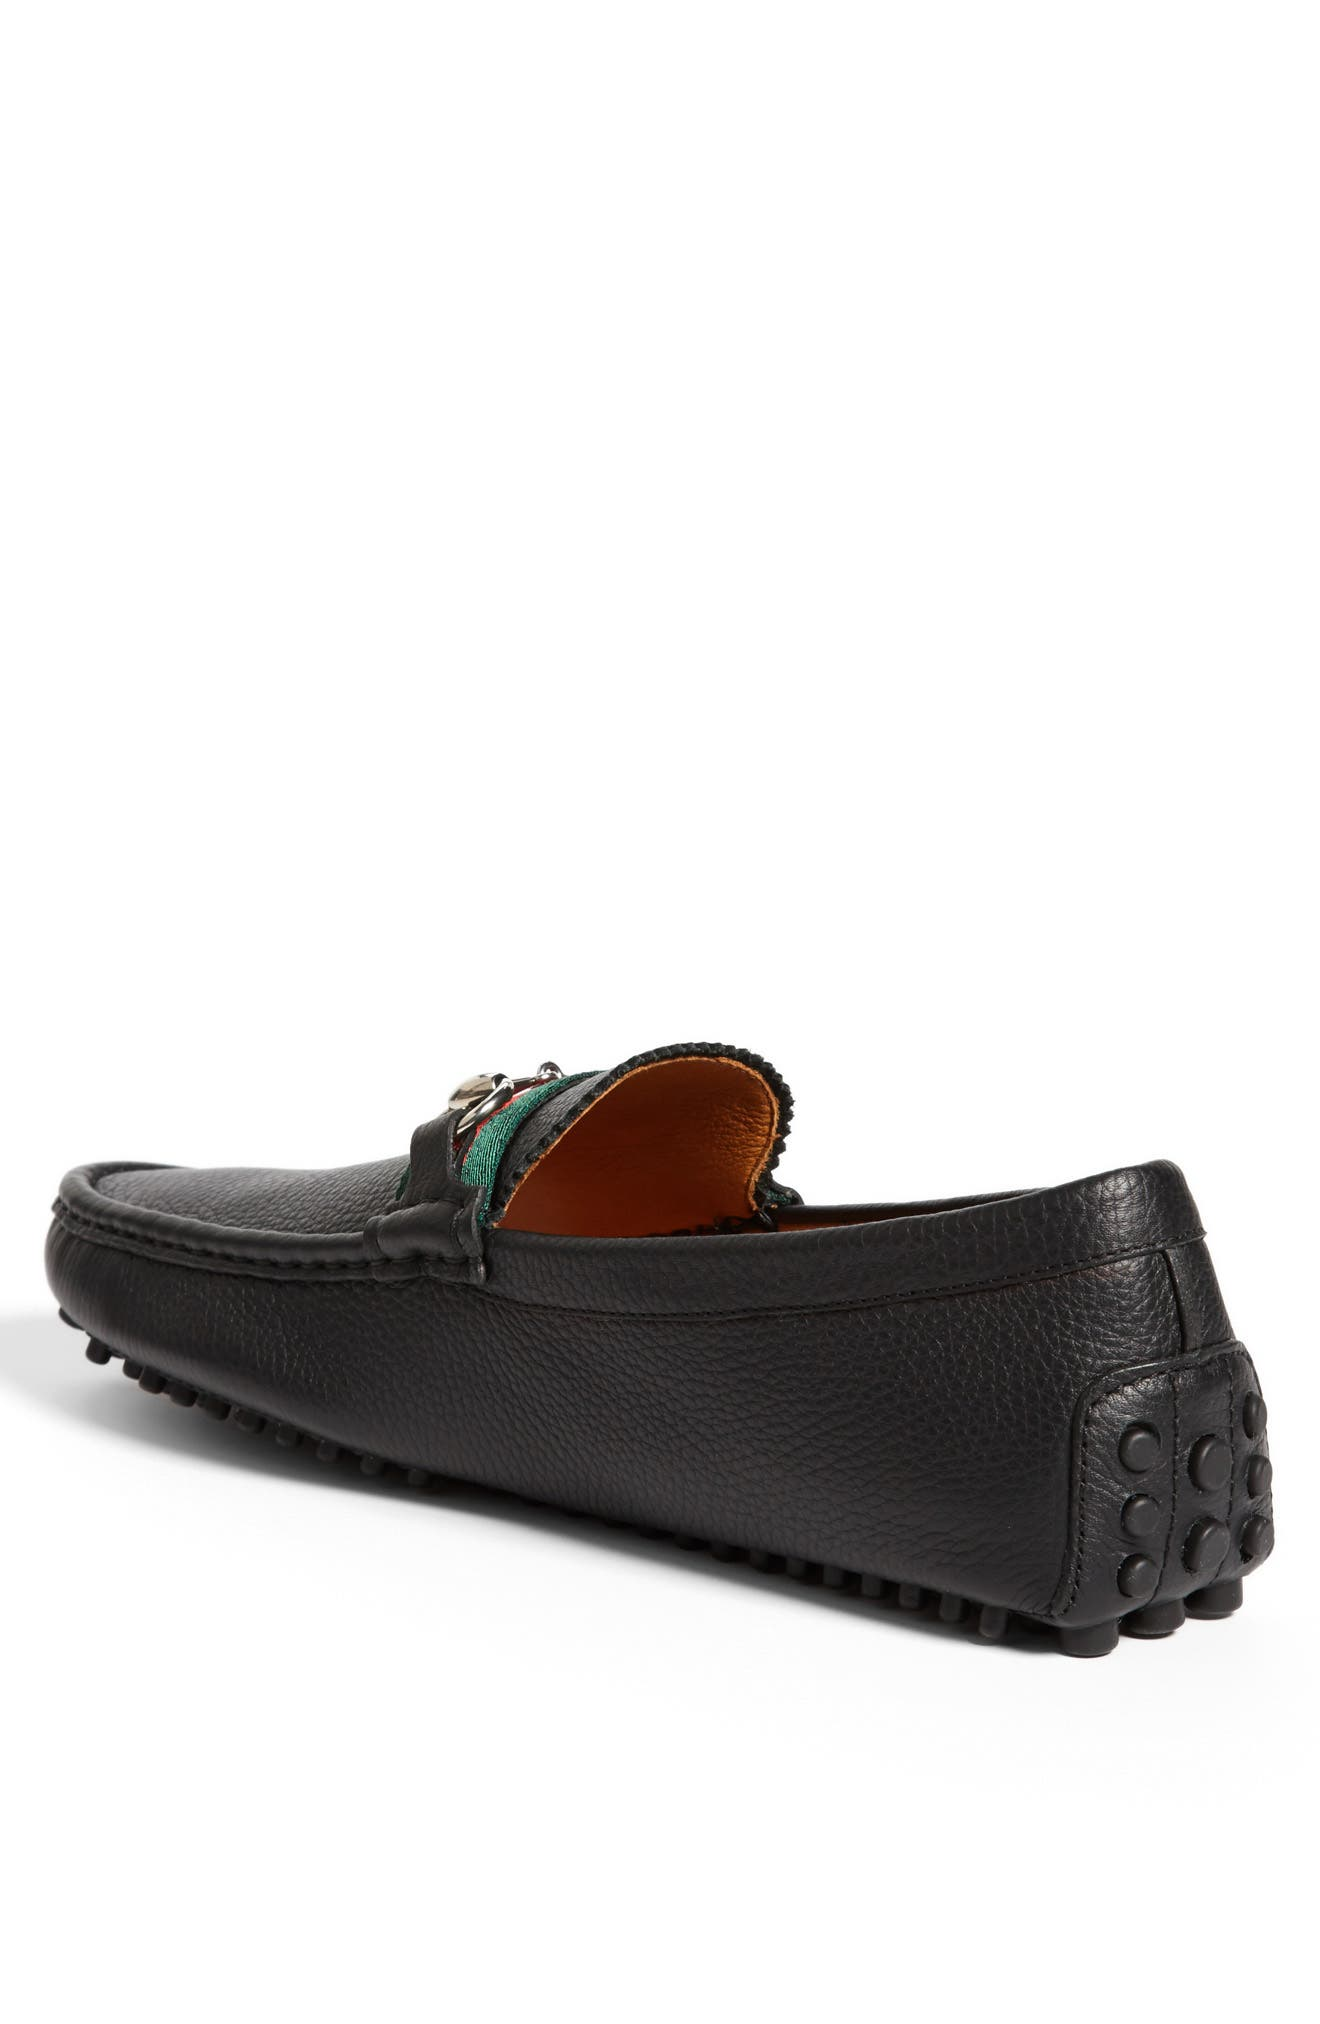 GUCCI, 'Damo' Driving Shoe, Alternate thumbnail 2, color, BLACK